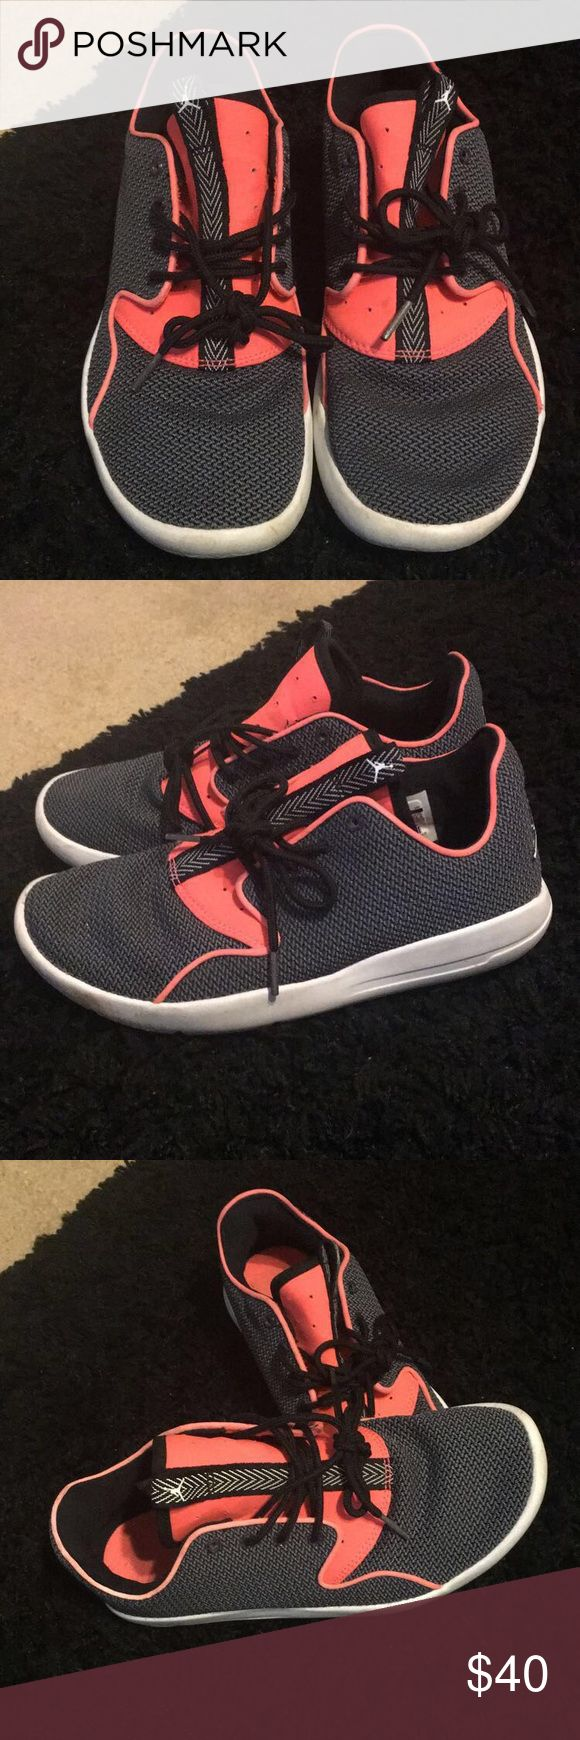 Air Jordan tennis shoes Excellent condition and barely worn! Bright coral and gray tennis shoes . Extremely comfortable and fashionable. Size 5 in kids but I wear a size 6 in woman's and they fit like a glove . Air Jordan Shoes Sneakers